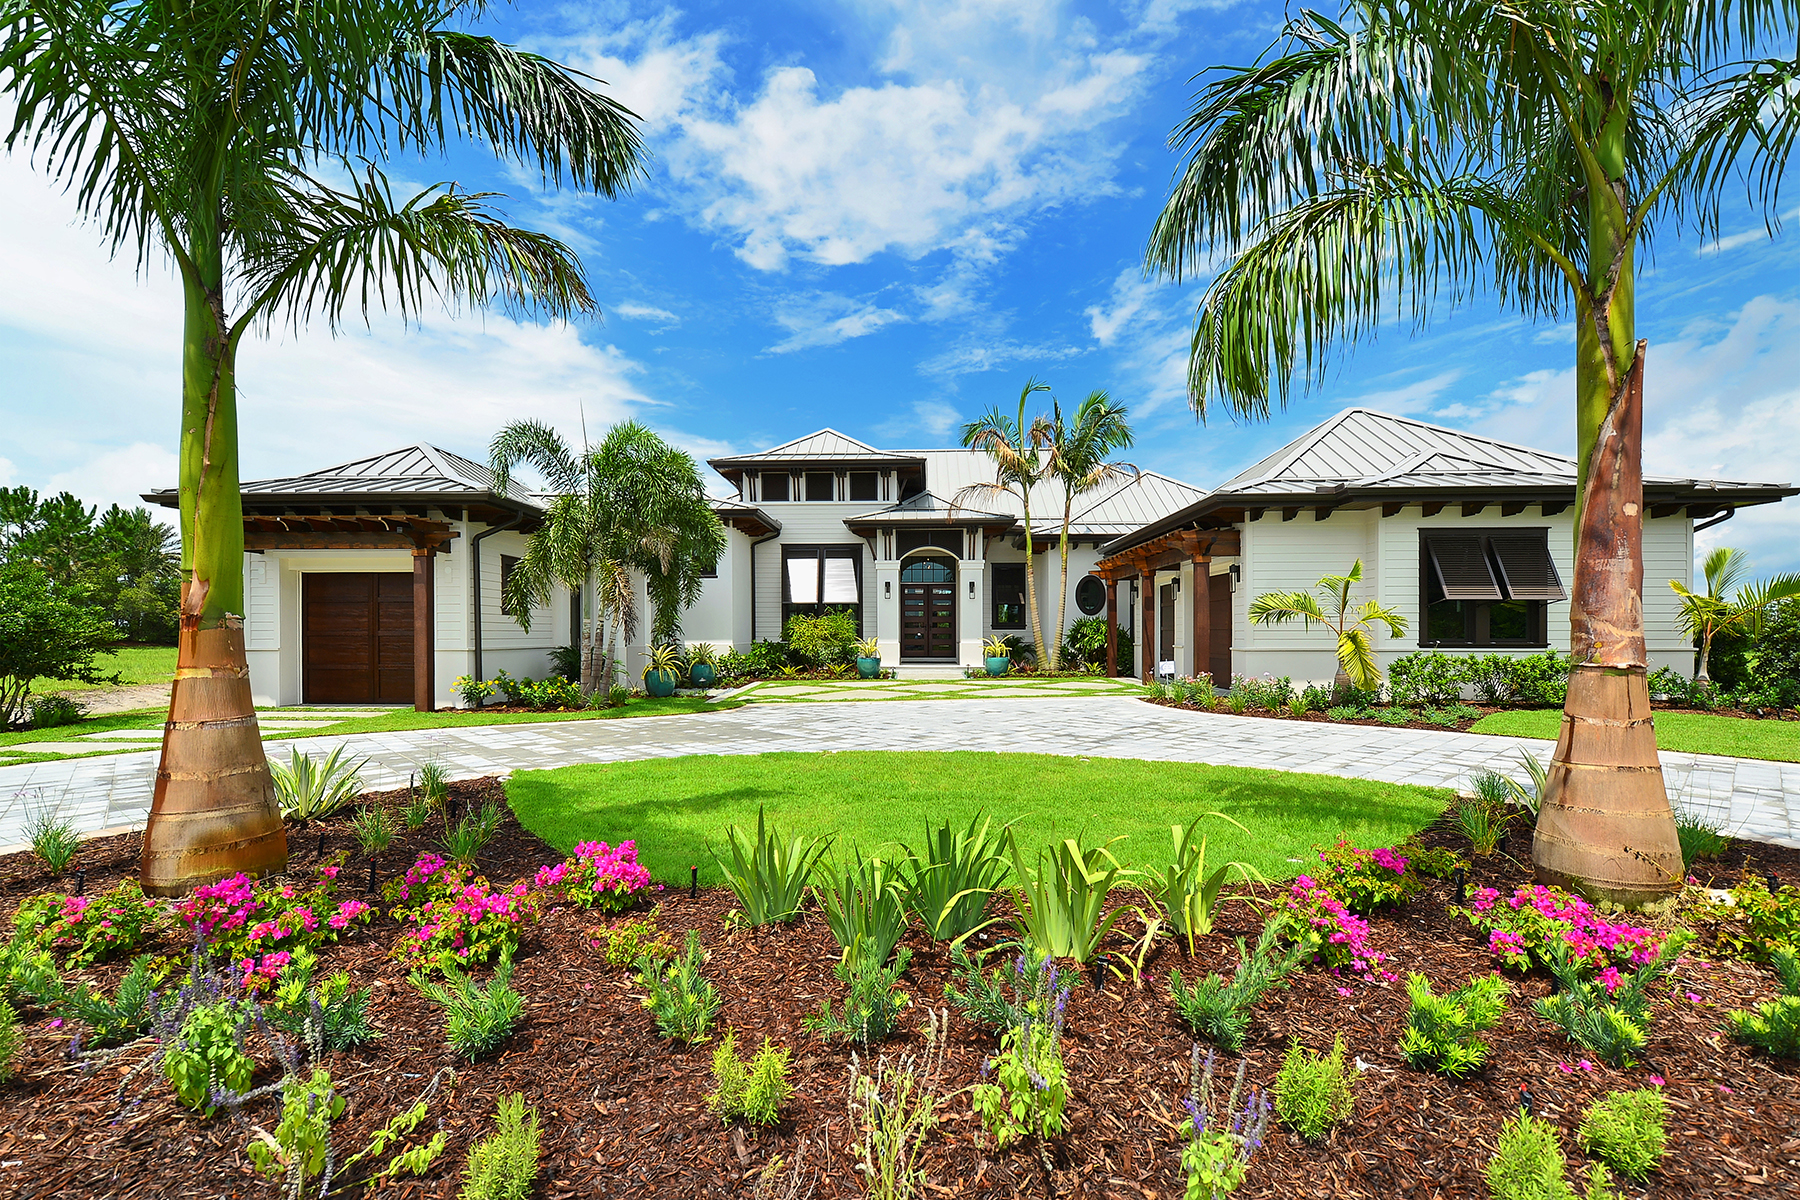 Single Family Home for Sale at THE LAKE CLUB 7926 Staysail Ct Lakewood Ranch, Florida, 34202 United States